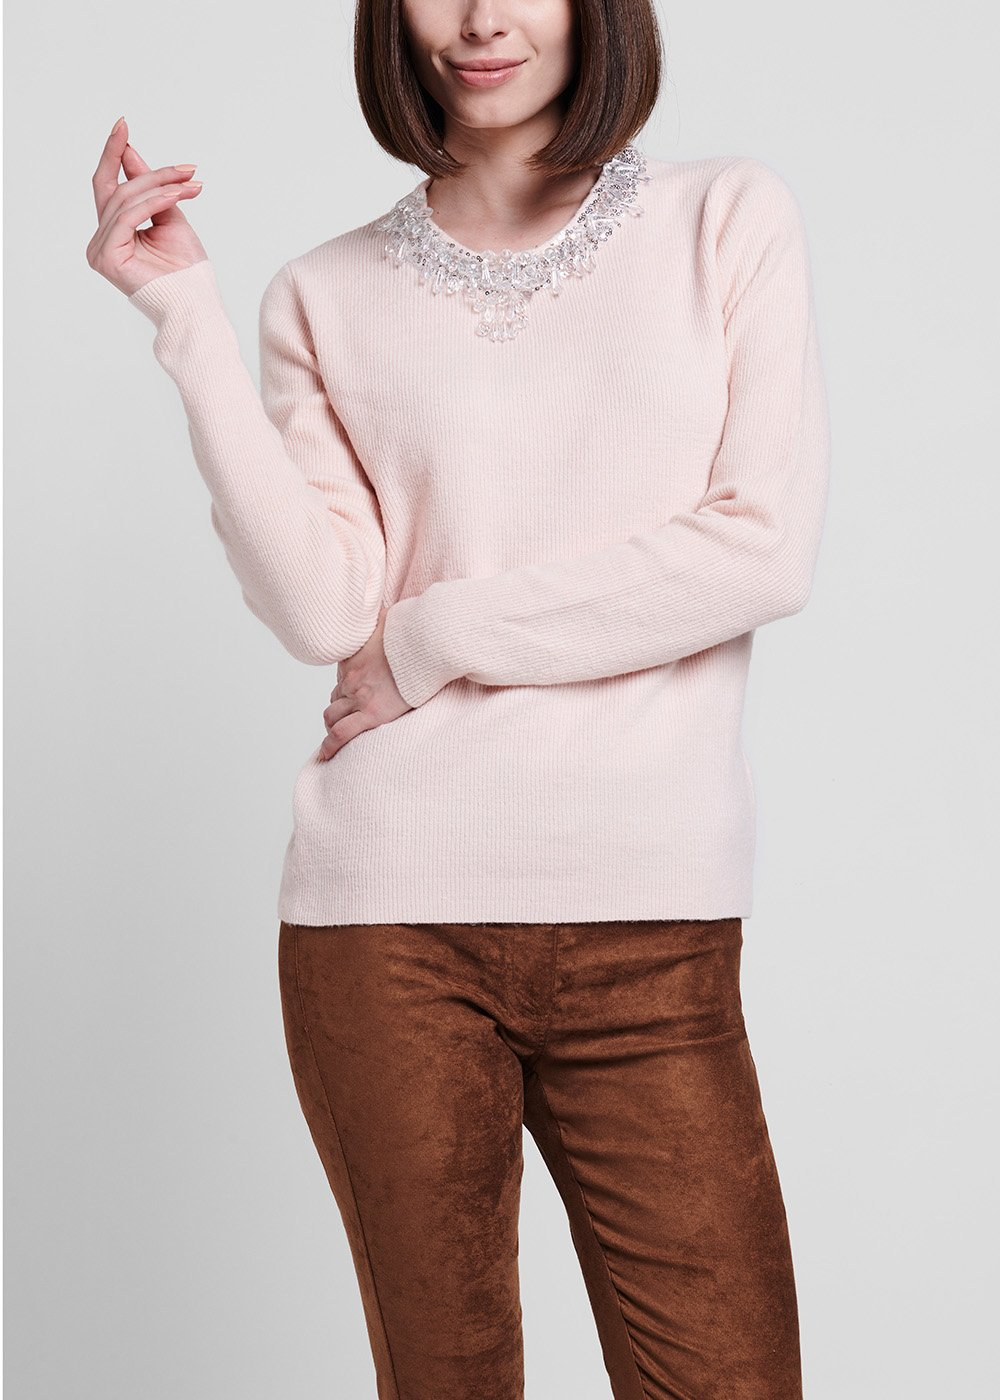 Sepia-coloured narrow-ribbed sweater with applique of crystals - Sepia - Woman